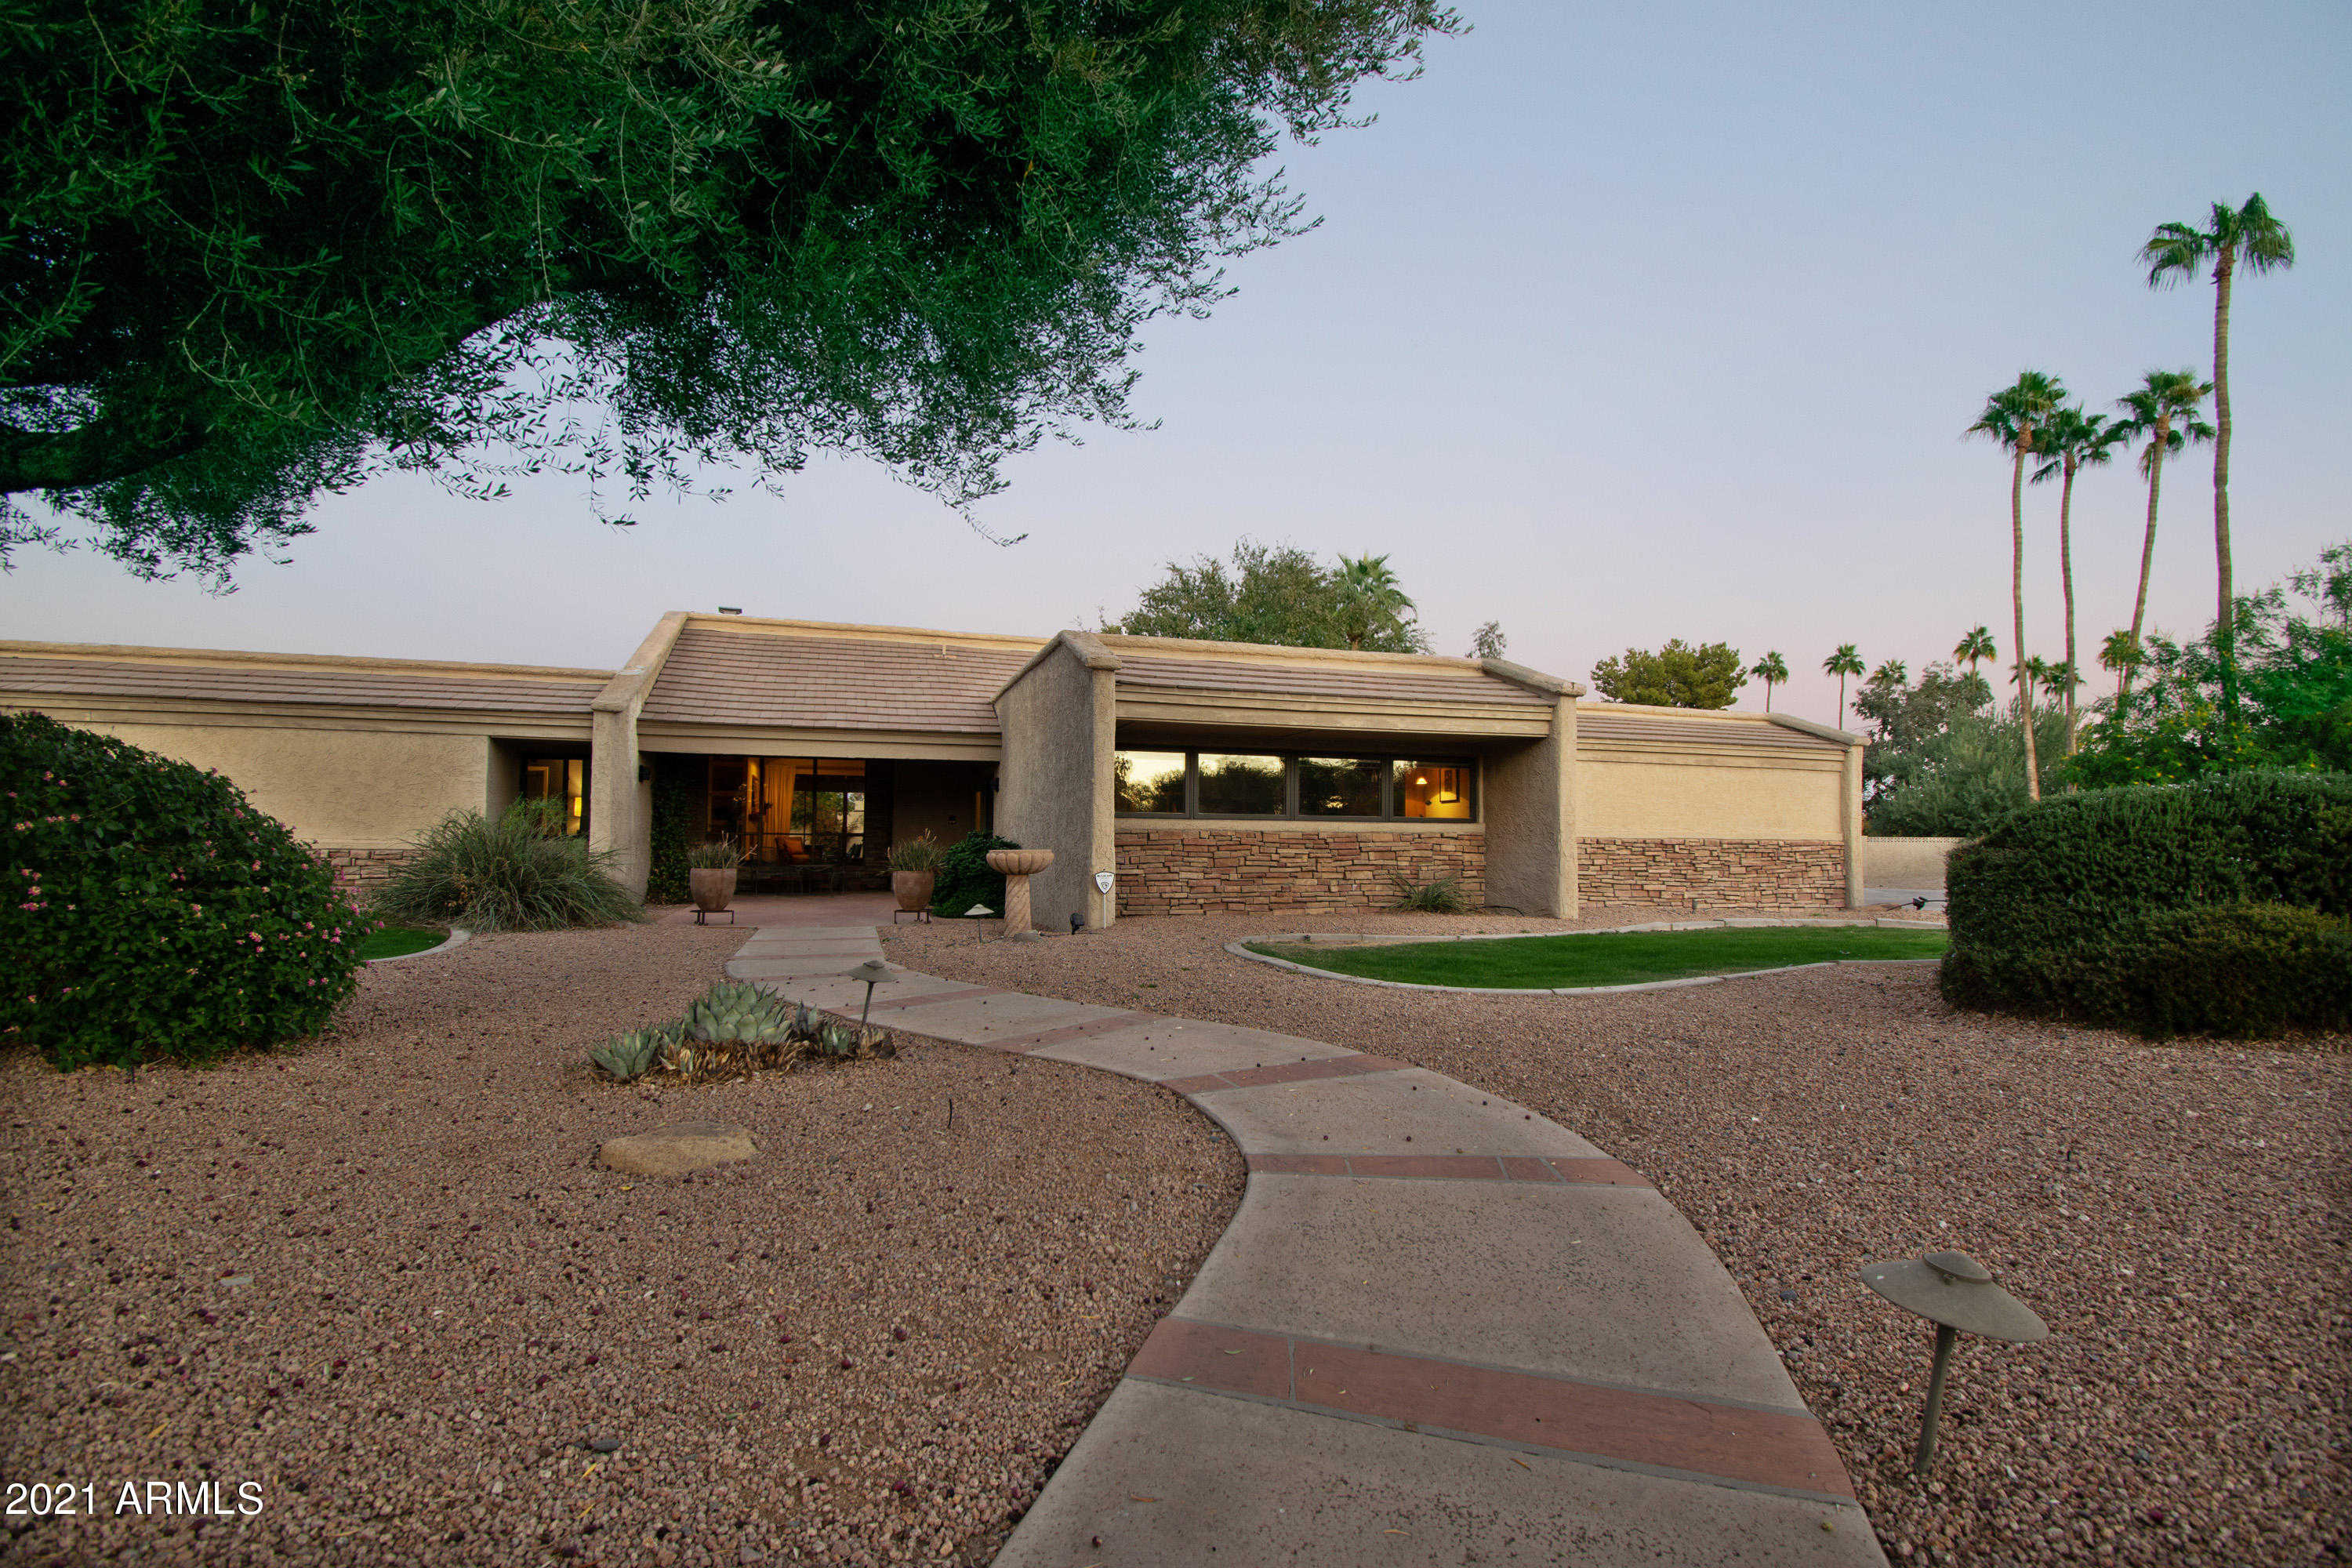 $1,425,000 - 4Br/3Ba - Home for Sale in Quail Vista, Paradise Valley